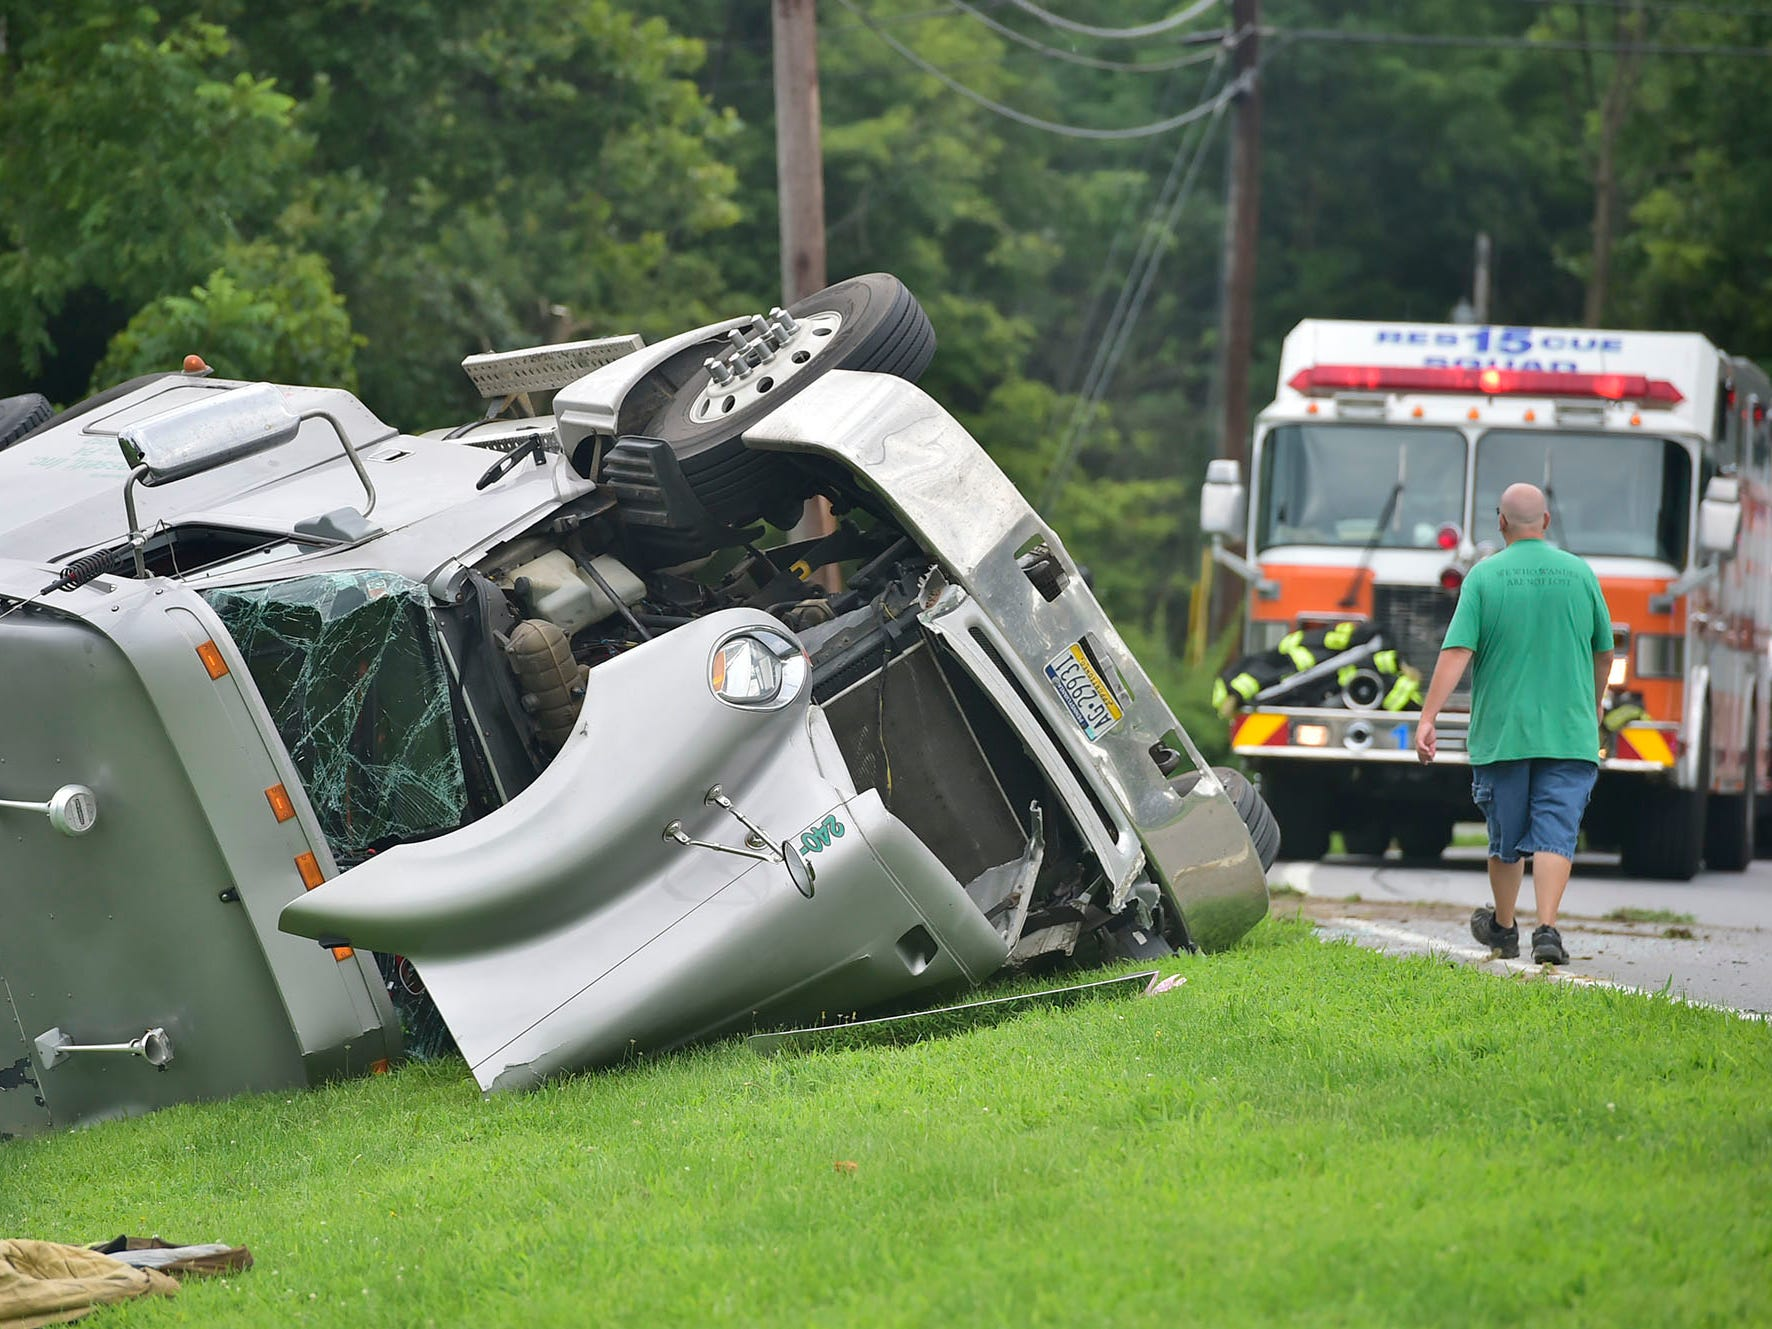 A tractor-trailer, hauling liquid tar, overturned across from 456 Siloam Road, Greene Township, just before 12:30pm, today. The driver was not injured in the crash. The street is closed at Airport Road as state police investigate. Firefighters are trying to contain the flow of oil and keep it out of the nearby creek.